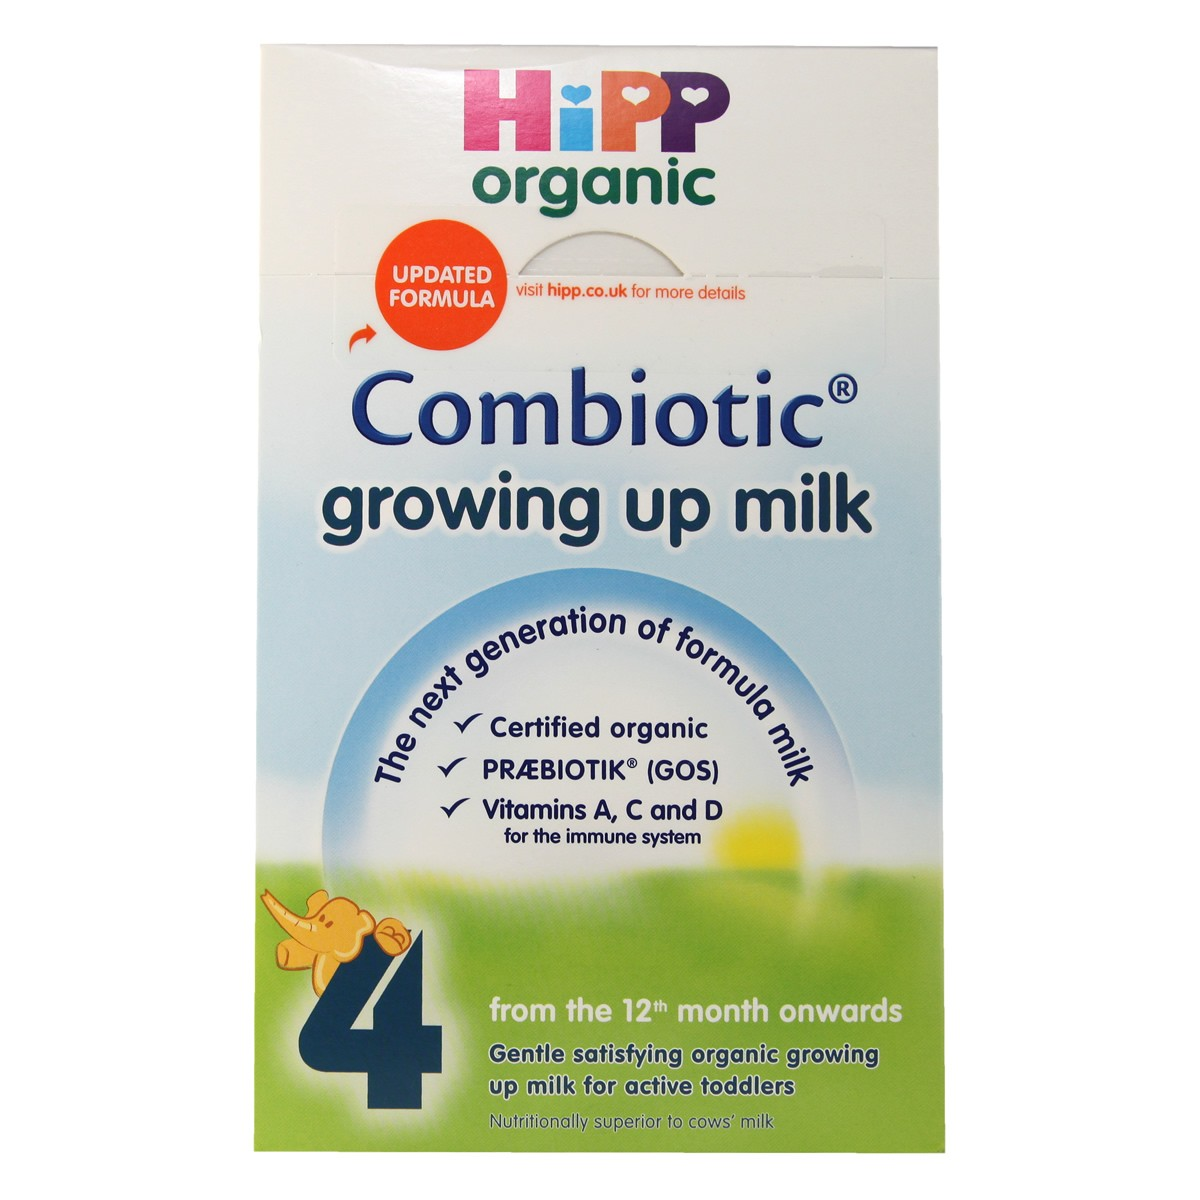 Hipp Organic Combiotic Growing Up Milk 4 (from the 12th month onwards)